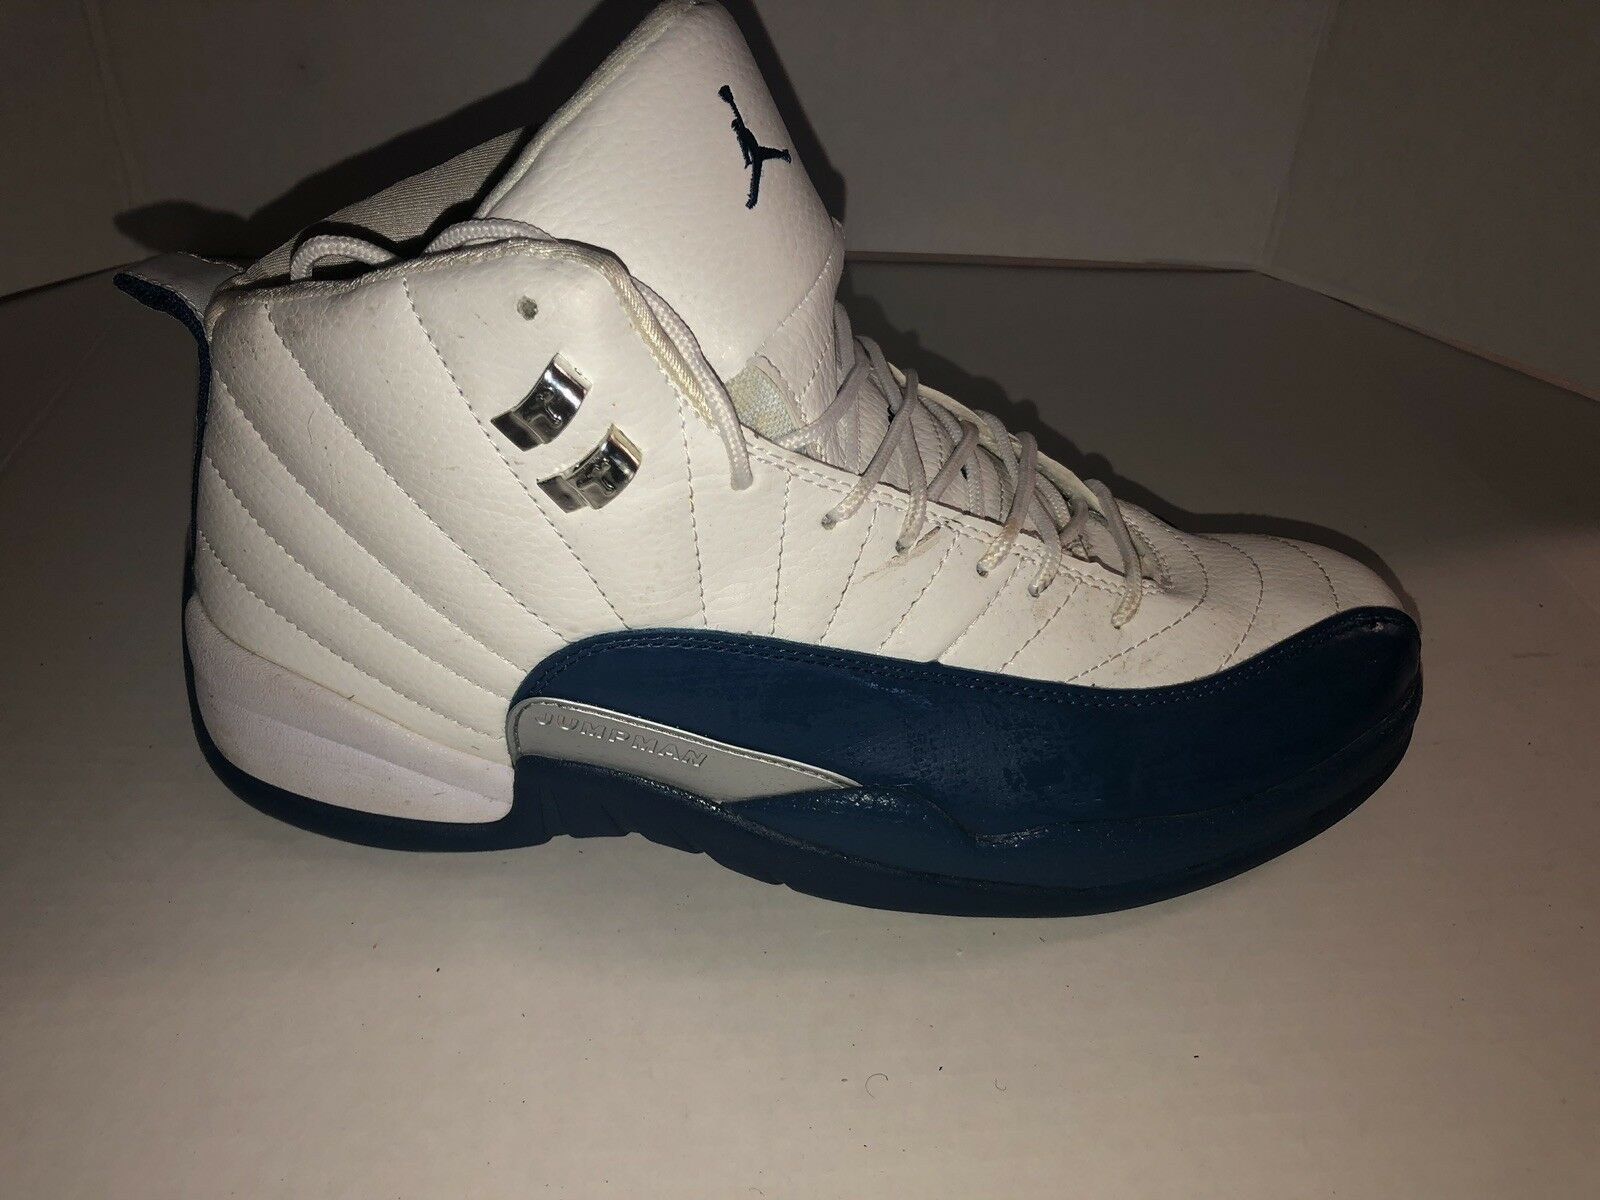 Air jordan retro 12 french bluee- All Sizes Available